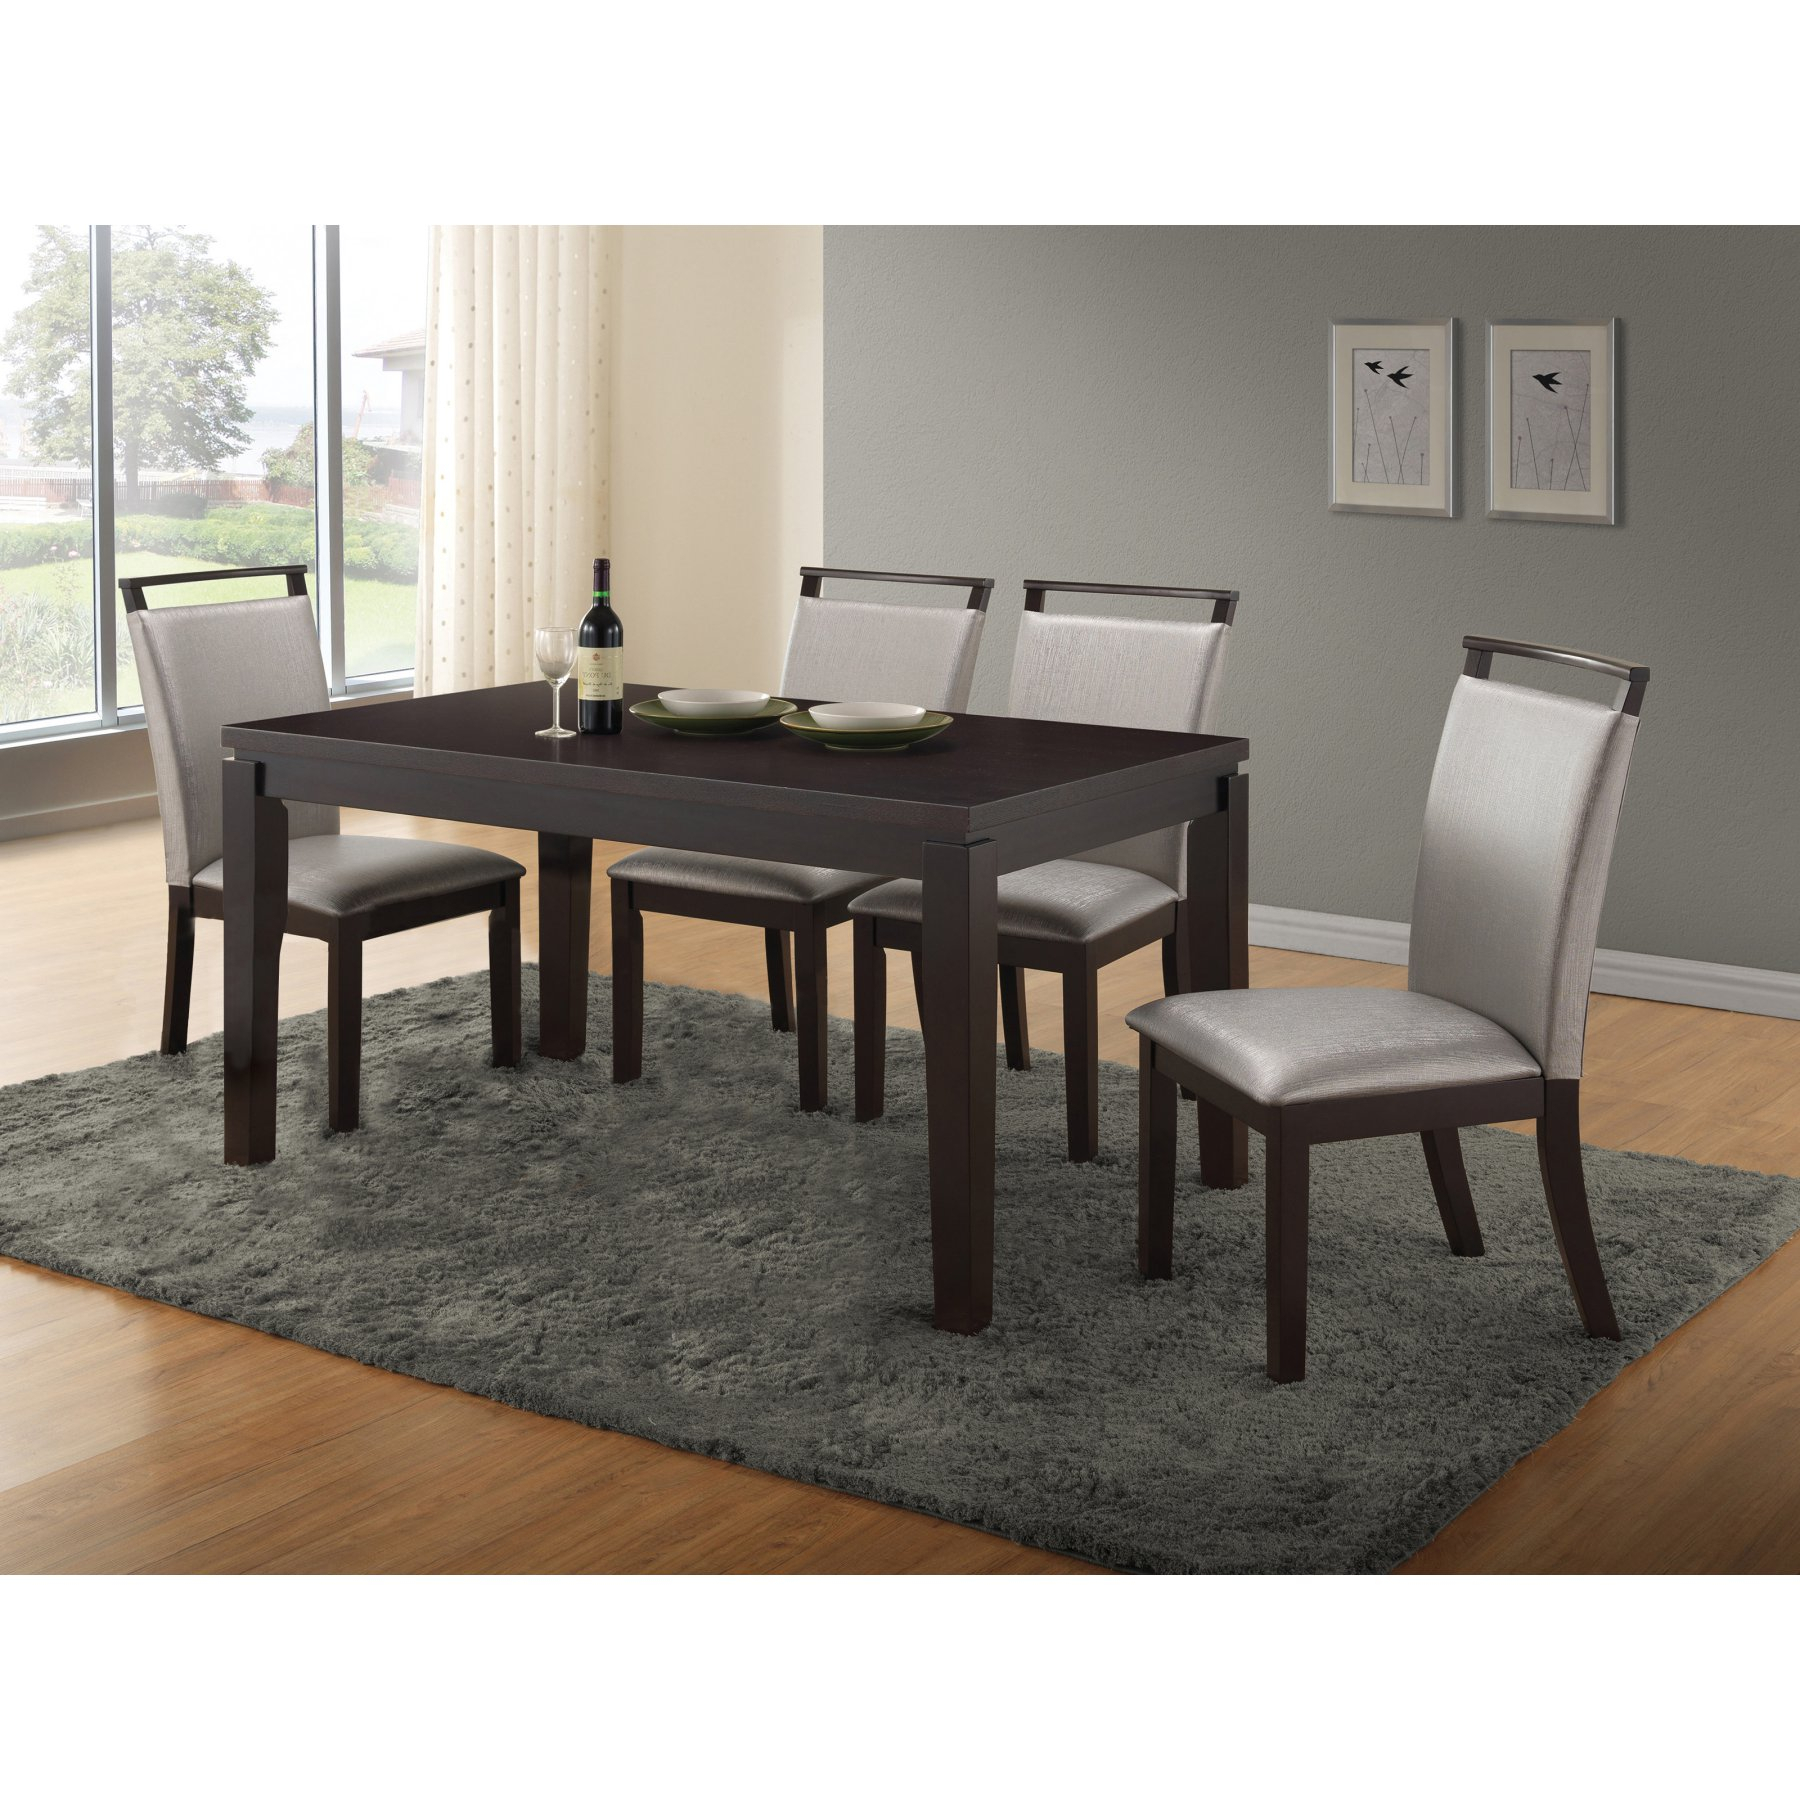 Most Popular Home Source Industries Christy 5 Piece Dining Table Set – H 6050 5 With Maynard 5 Piece Dining Sets (View 3 of 20)